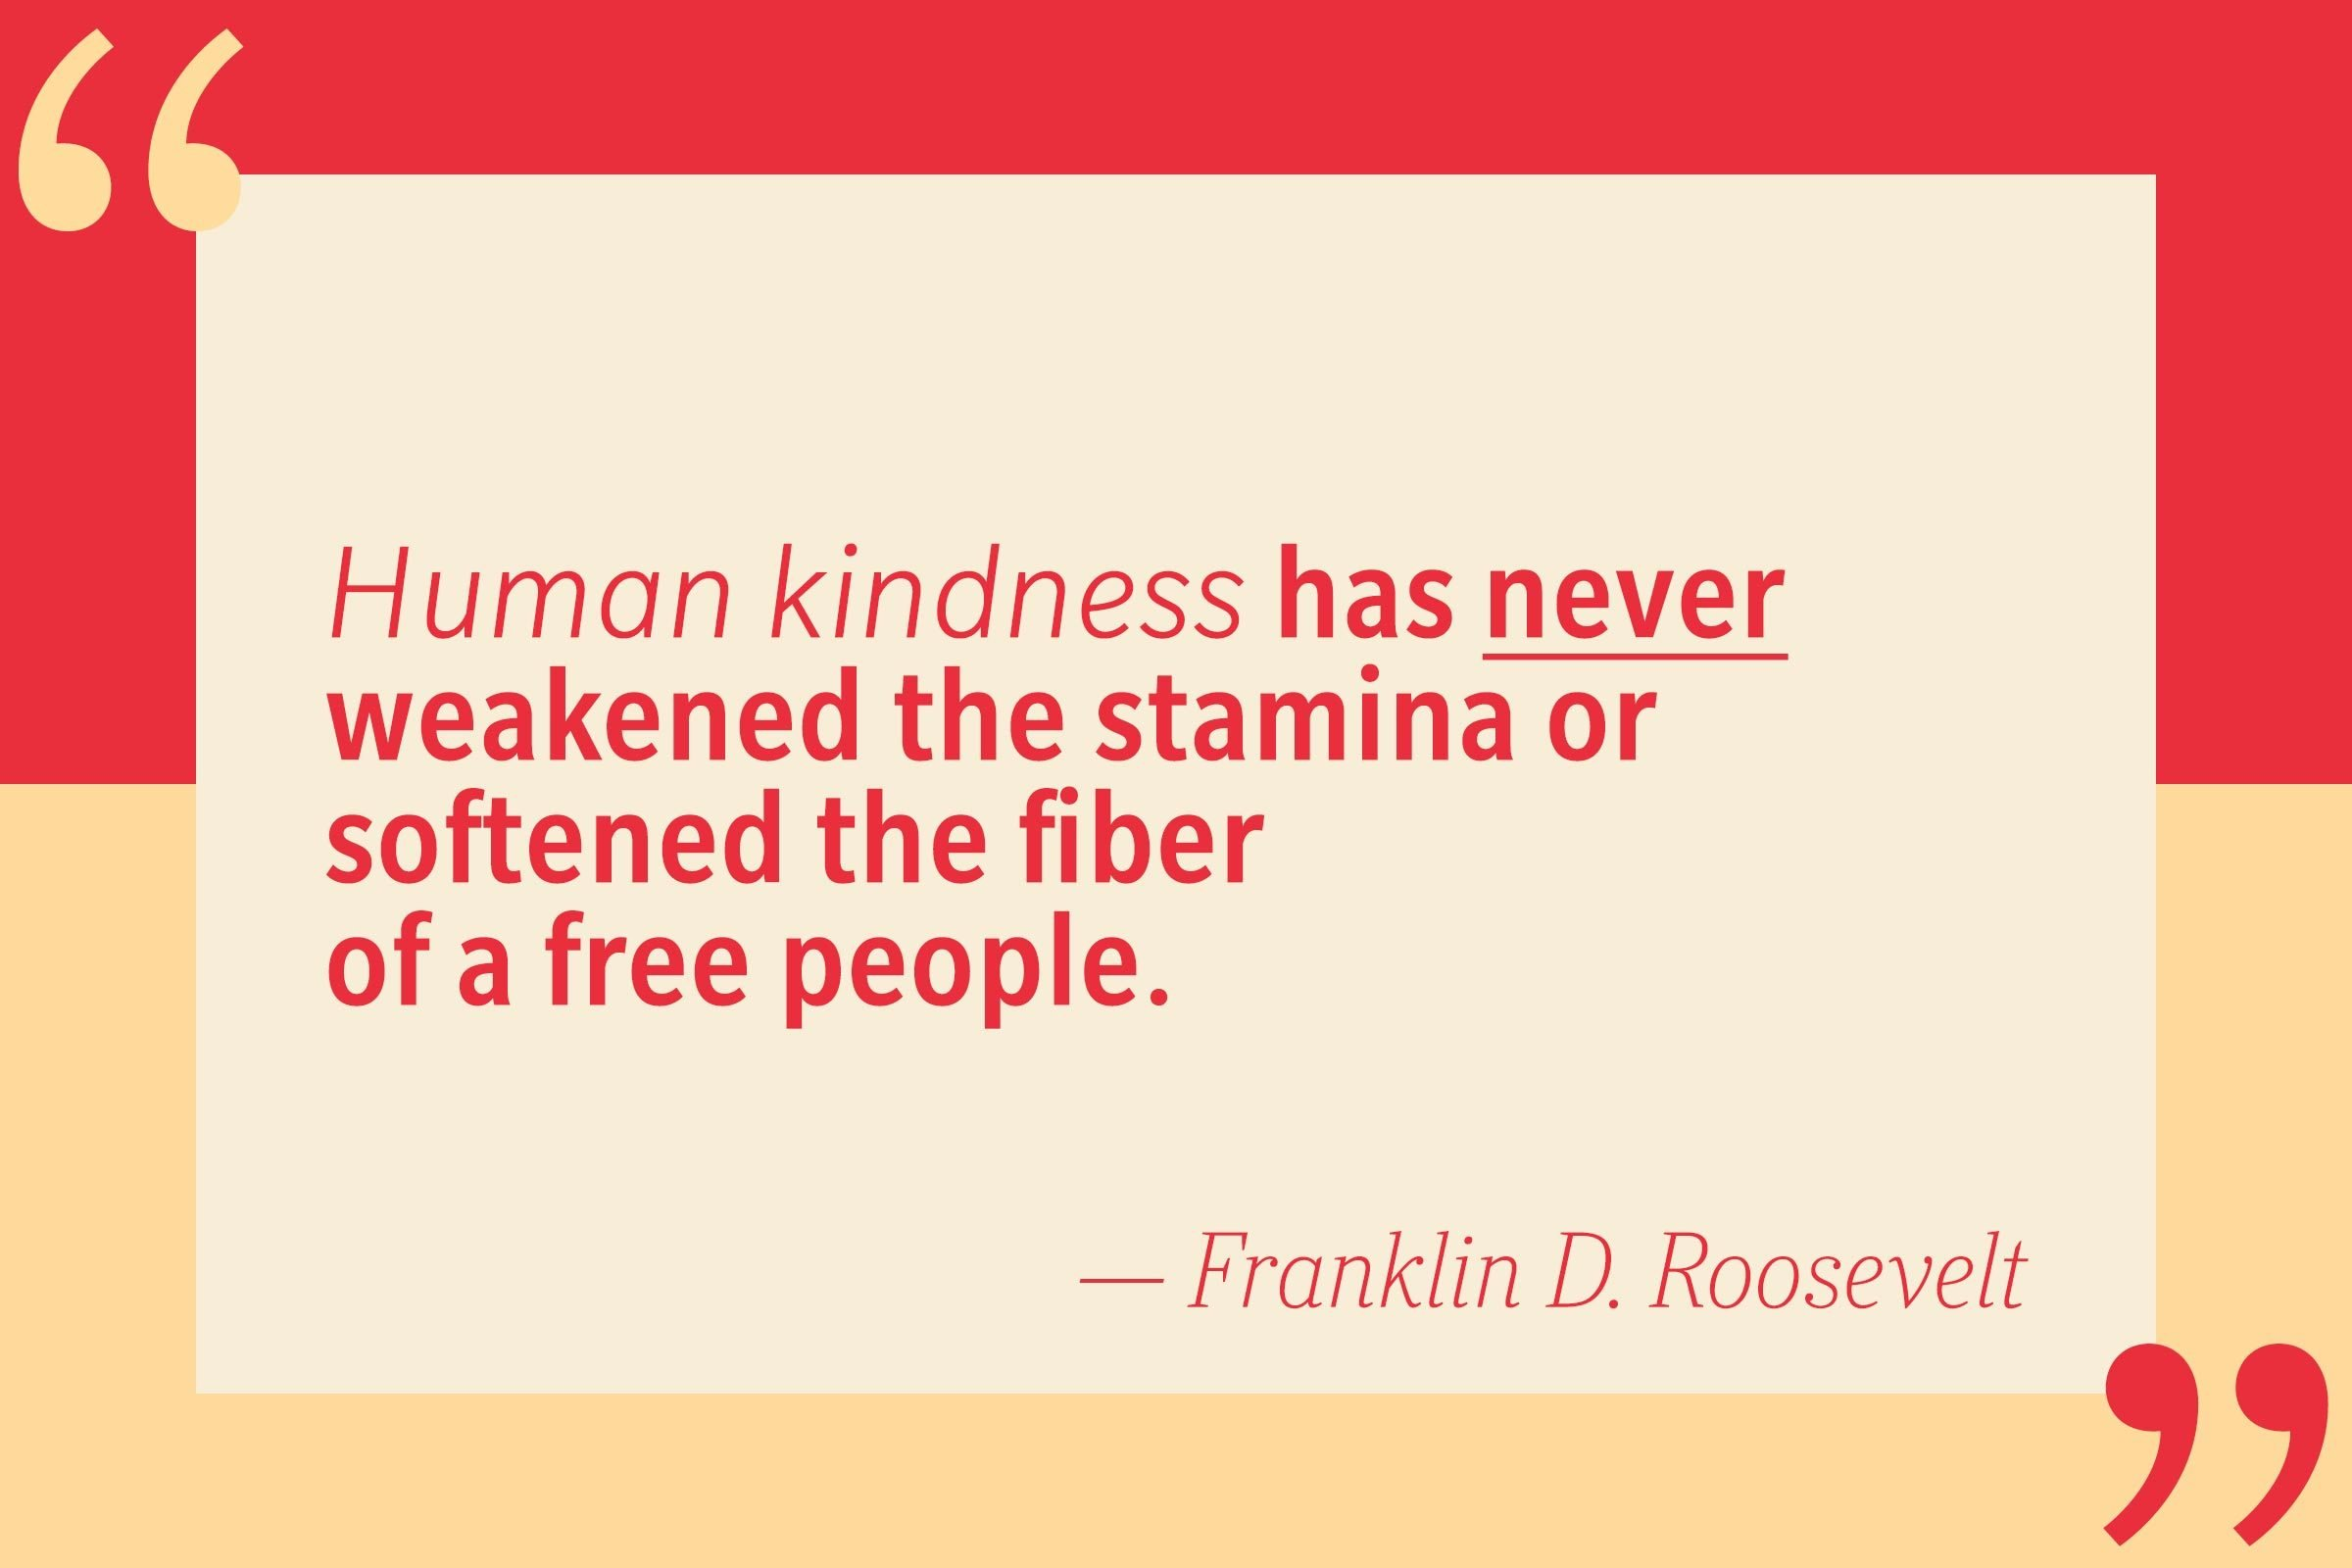 Human kindness has never weakened the stamina or softened the fiber of a free people. — Franklin D. Roosevelt